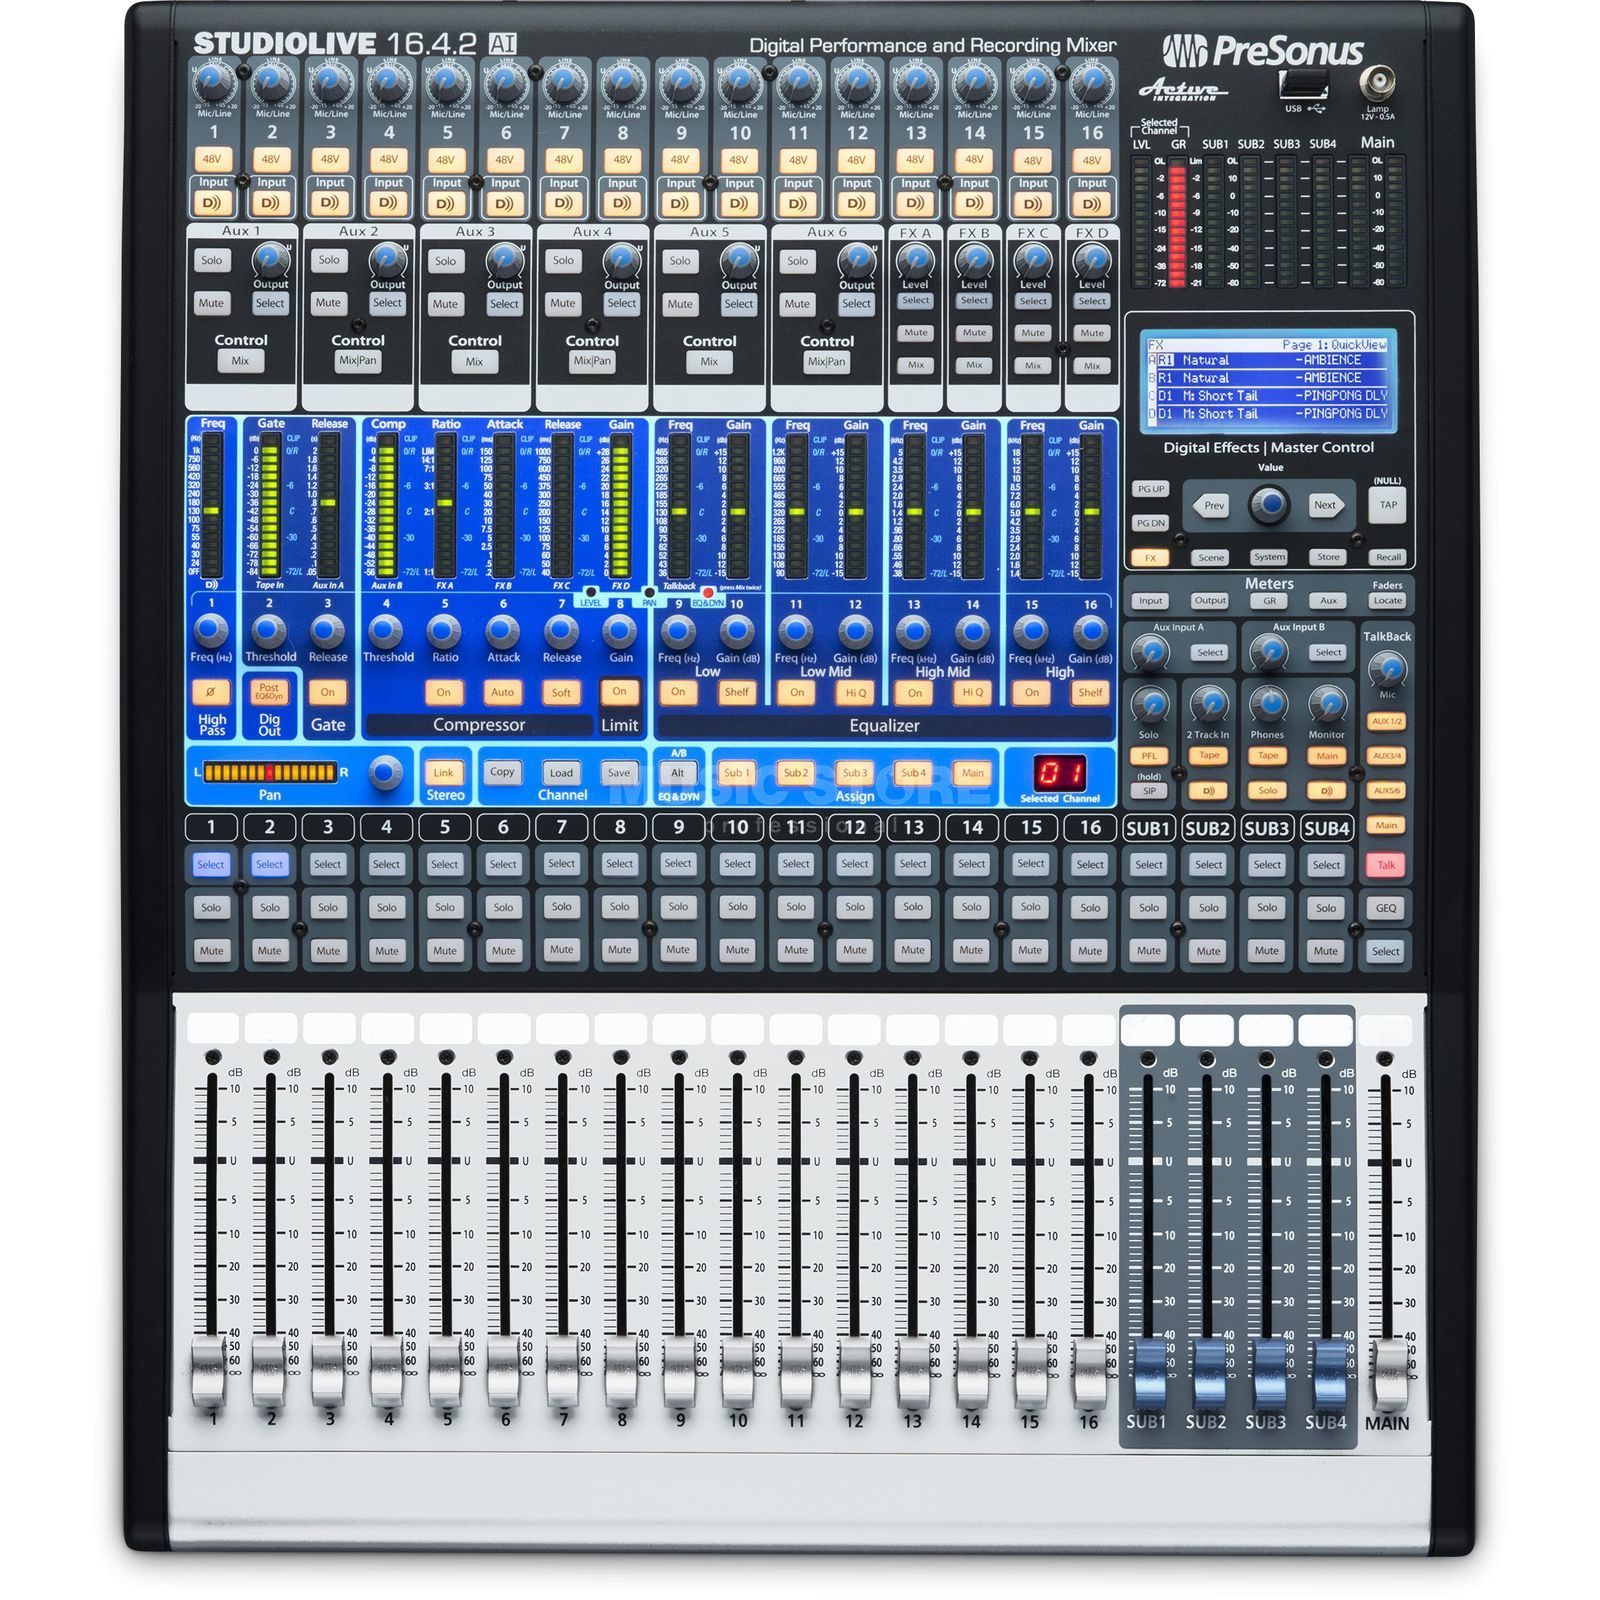 Presonus studiolive 16 4 2 ai for Fenster 4 16 4